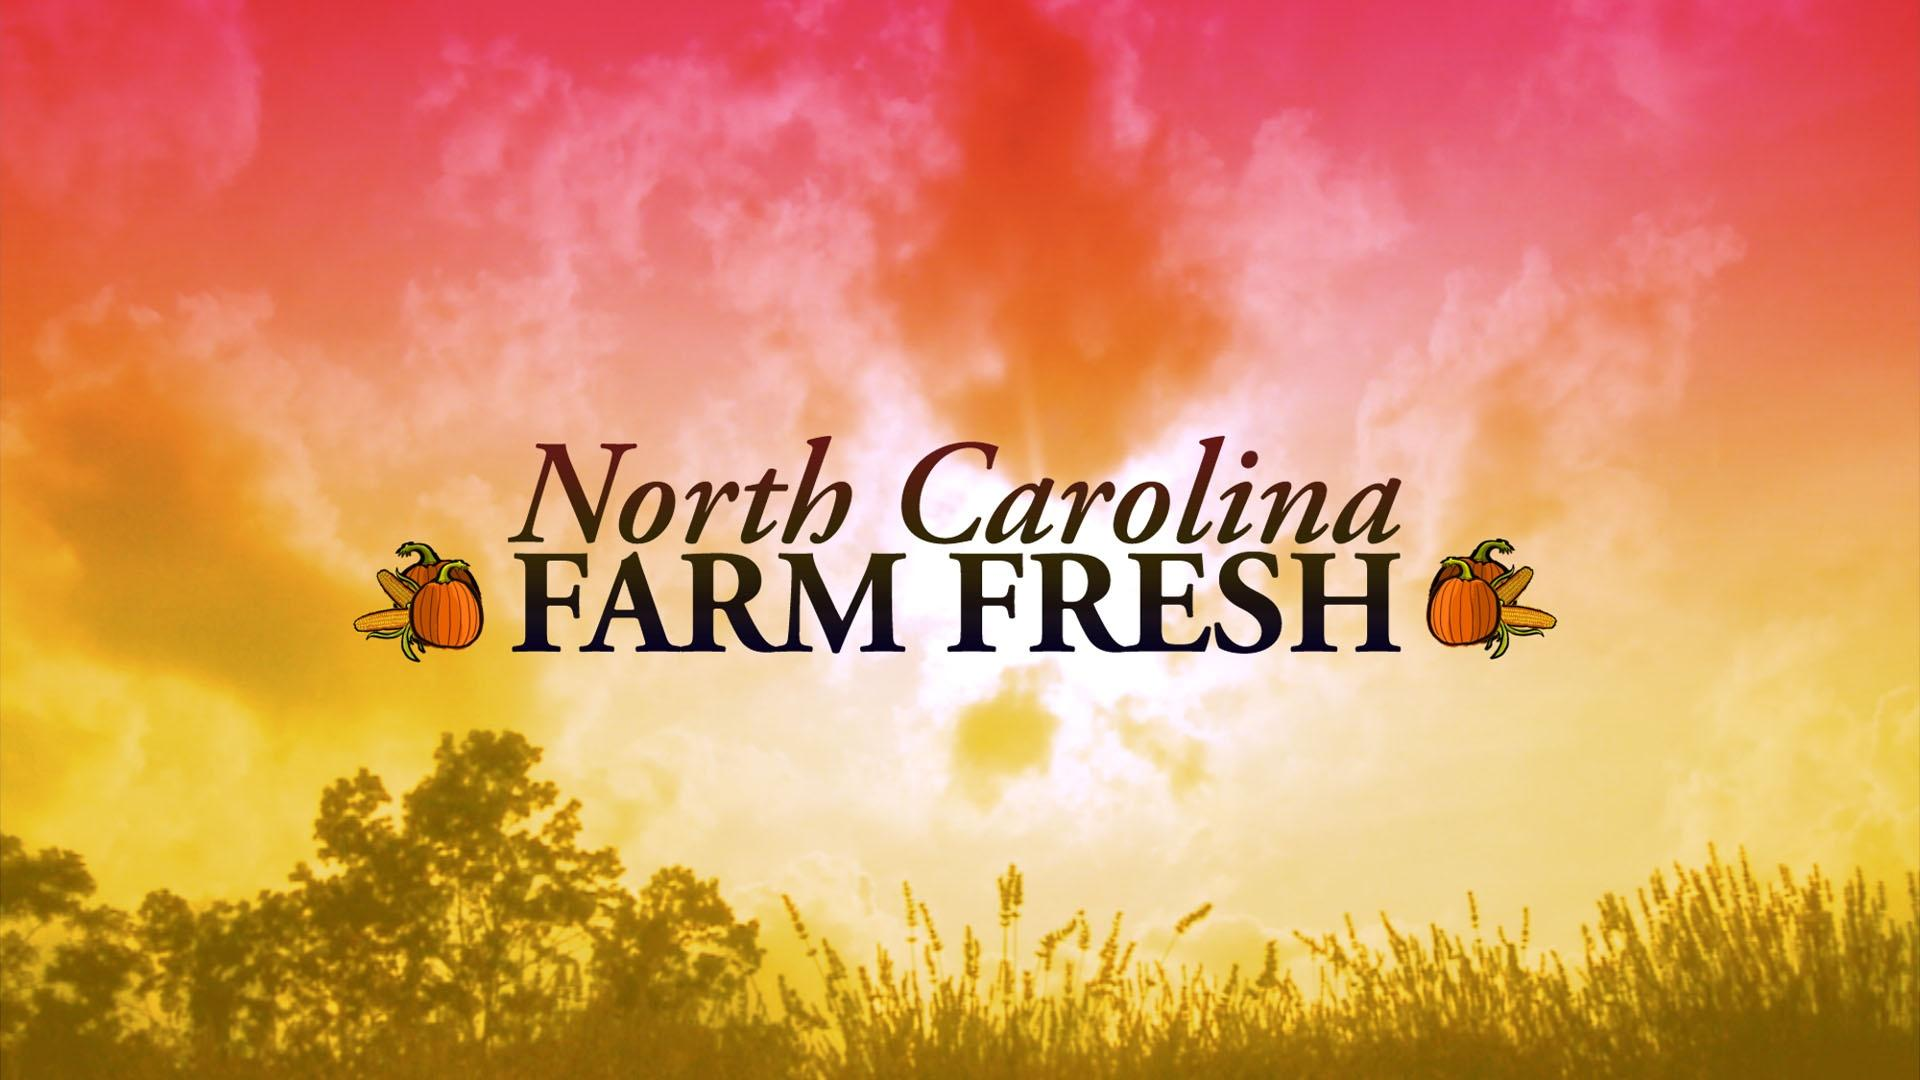 North Carolina Farm Fresh